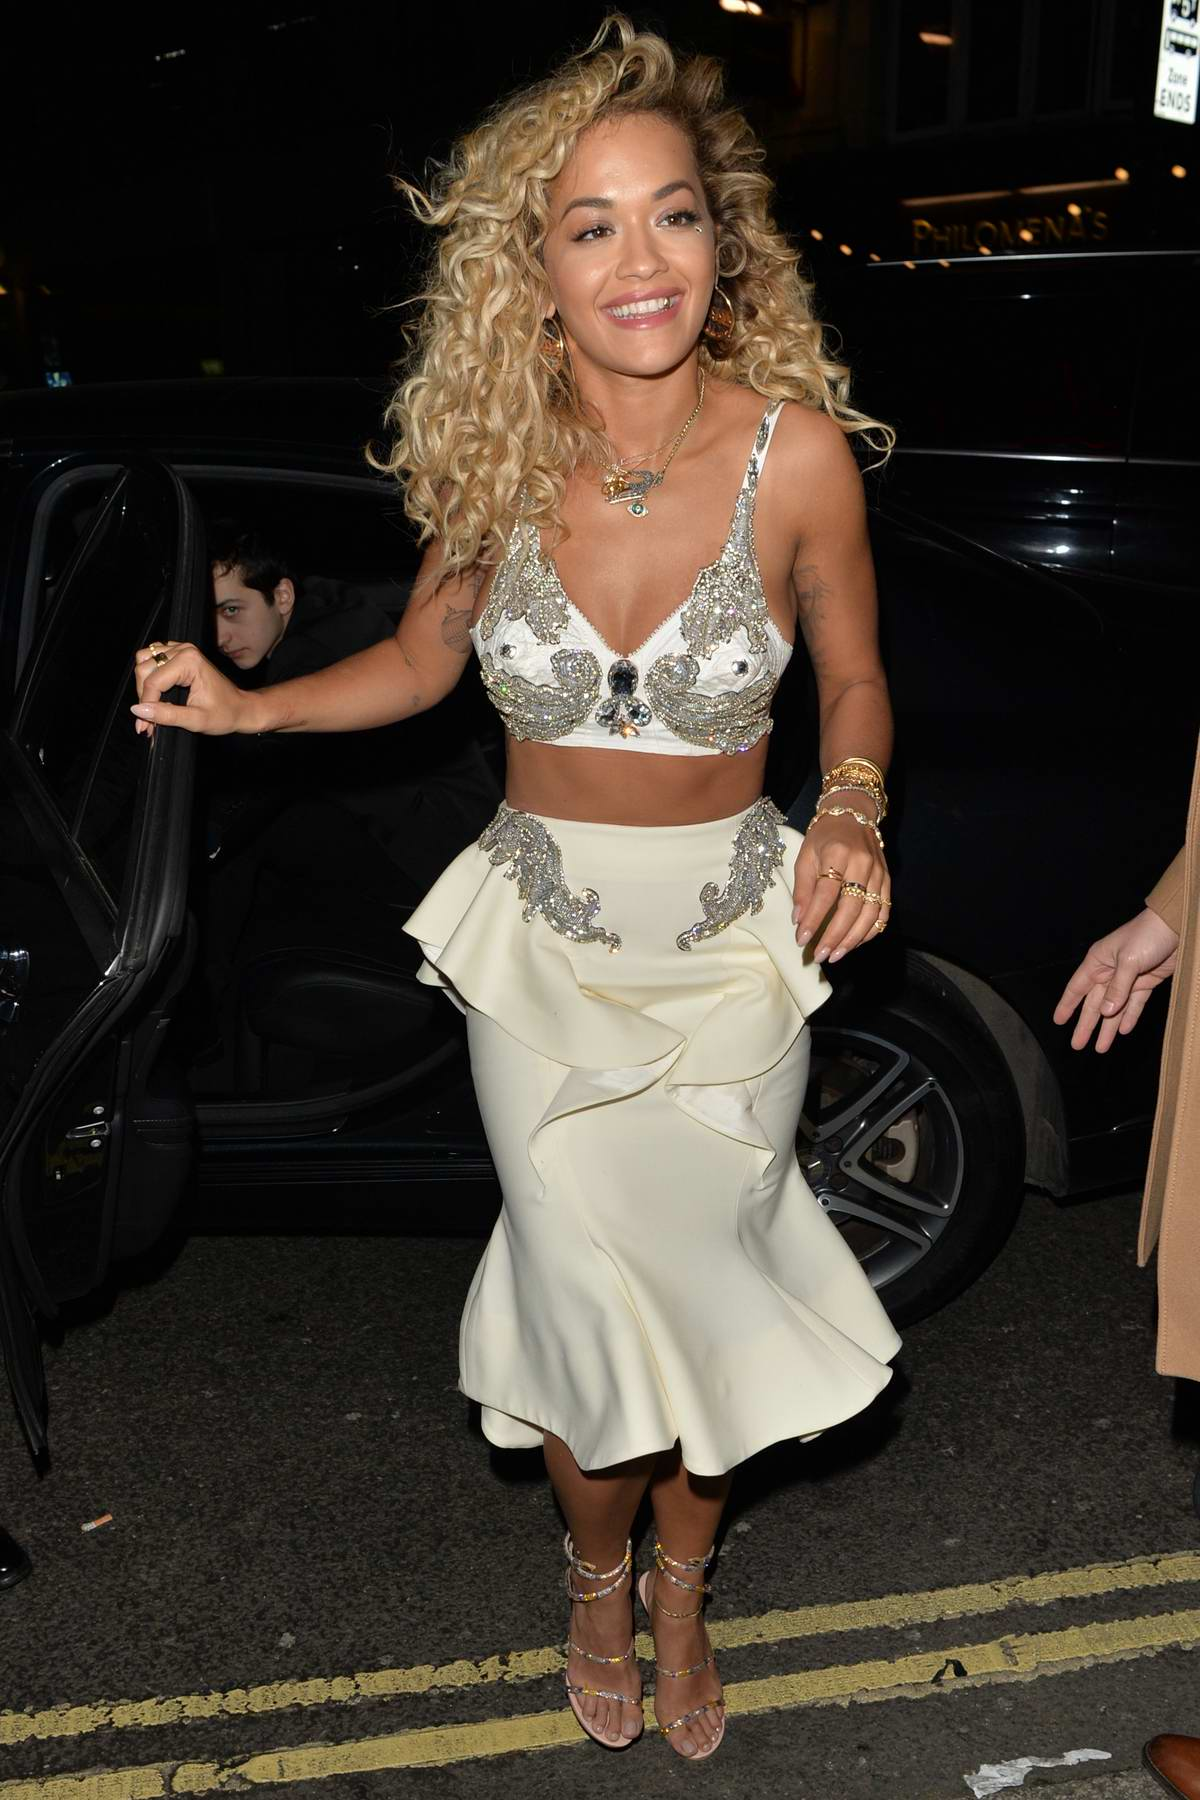 Rita Ora arrives at the Warner Brother after-party at Freemasons in London